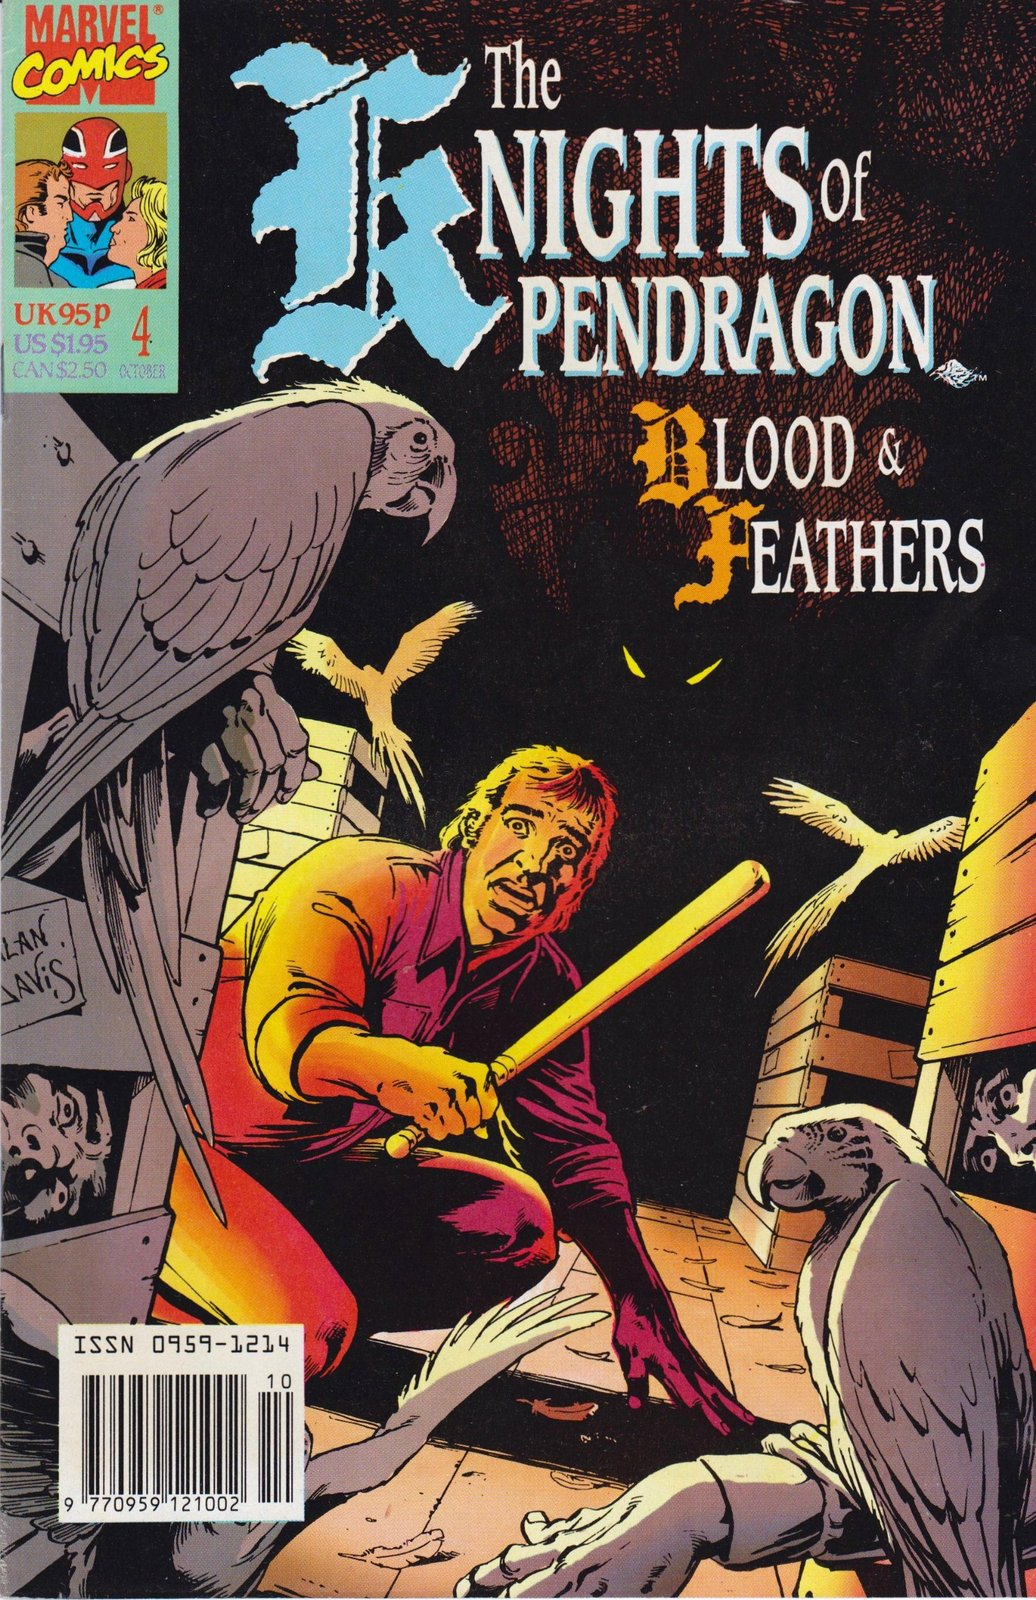 Knight Of Pendragon #4 [Comic] [Jun 01, 1990] No information available at the...